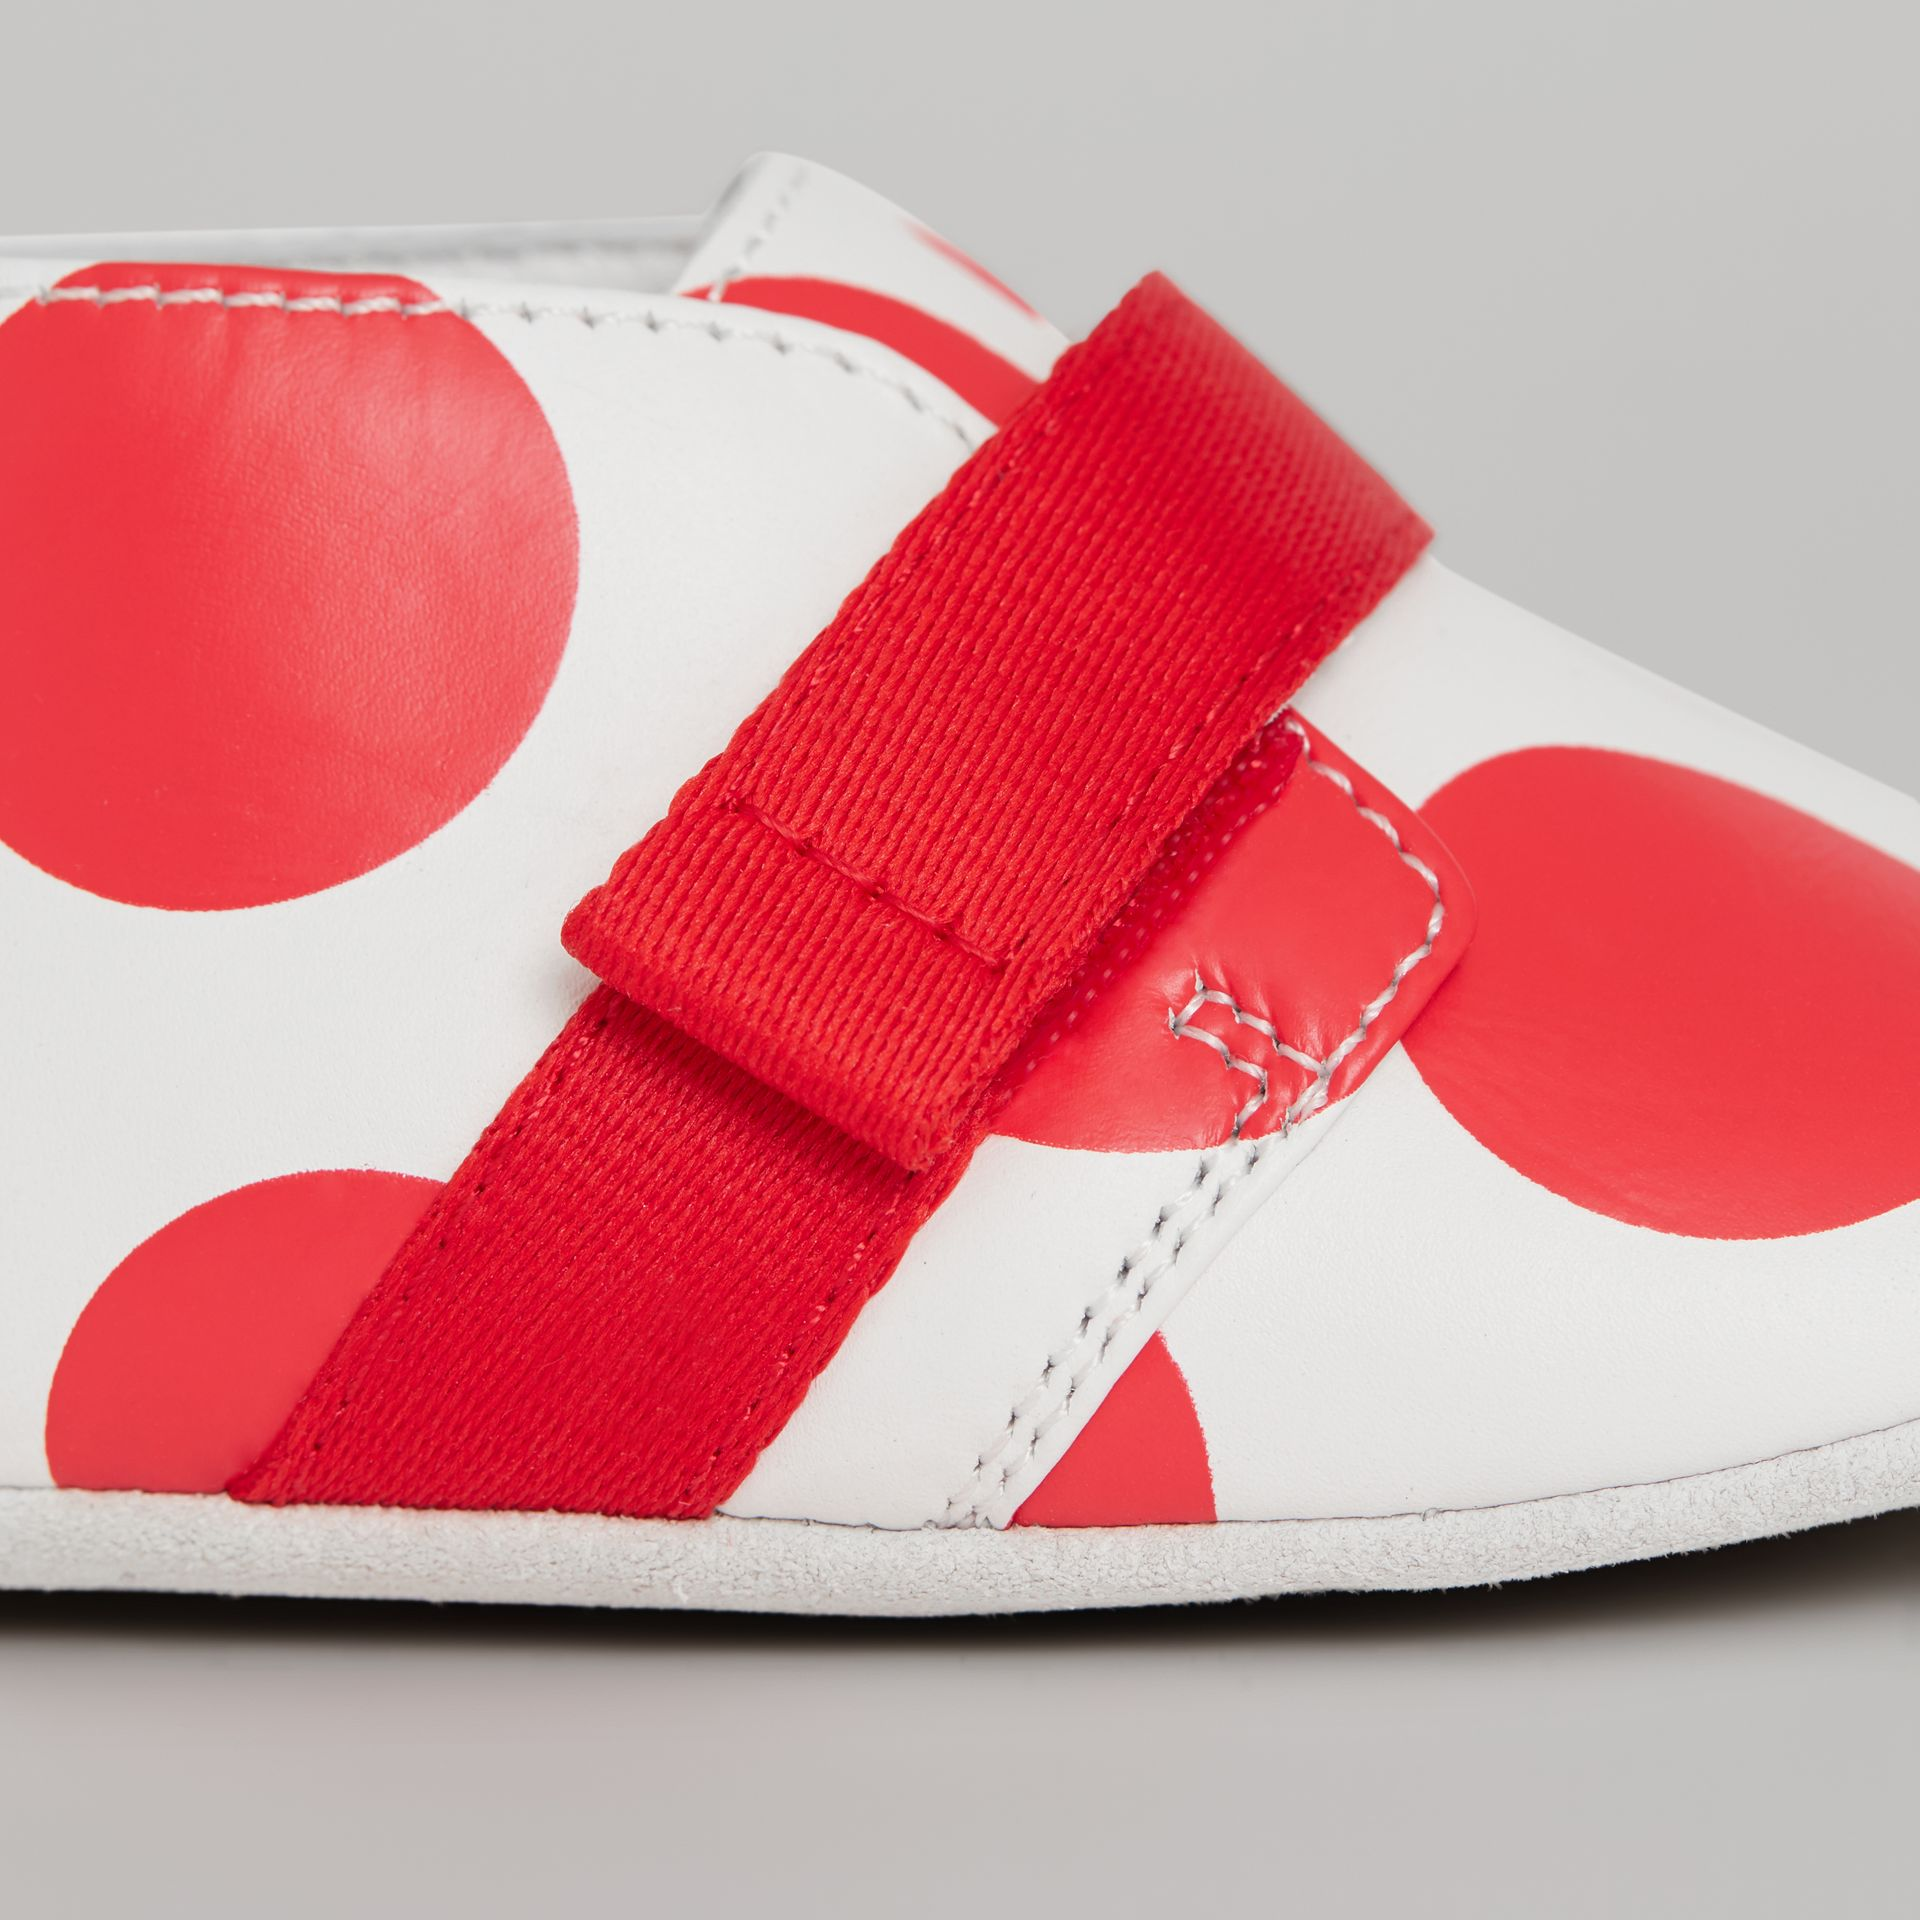 Spot Print Leather Shoes in Bright Red - Children | Burberry Australia - gallery image 1